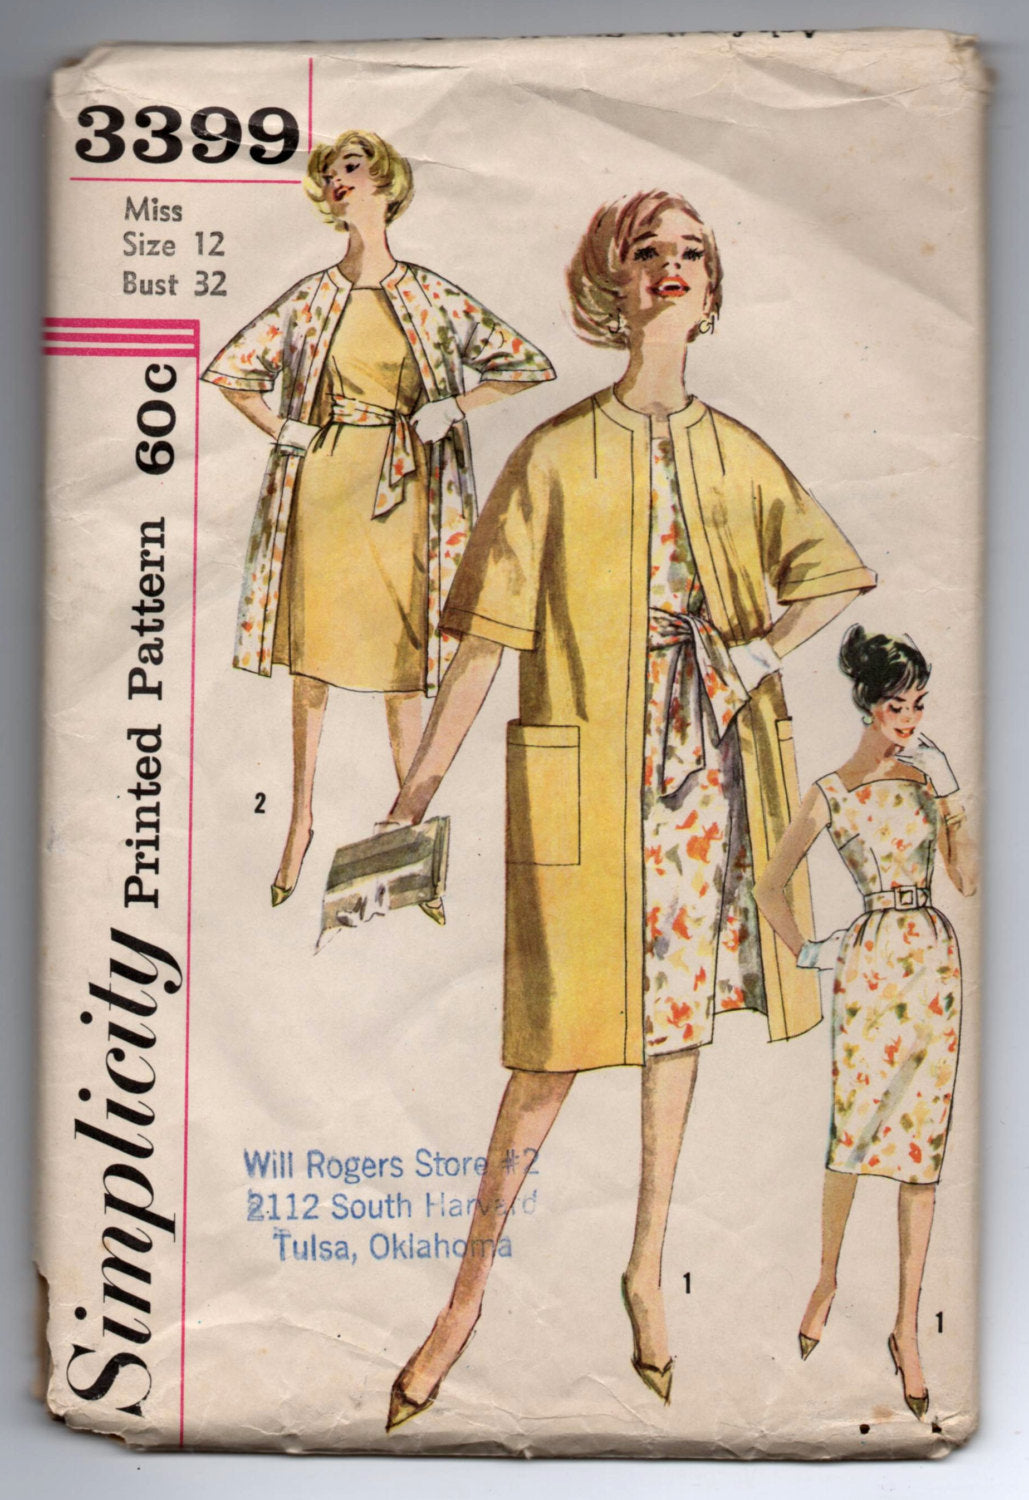 1960's Simplicity One-piece Dress with curved neckline and Coat pattern - Bust 32